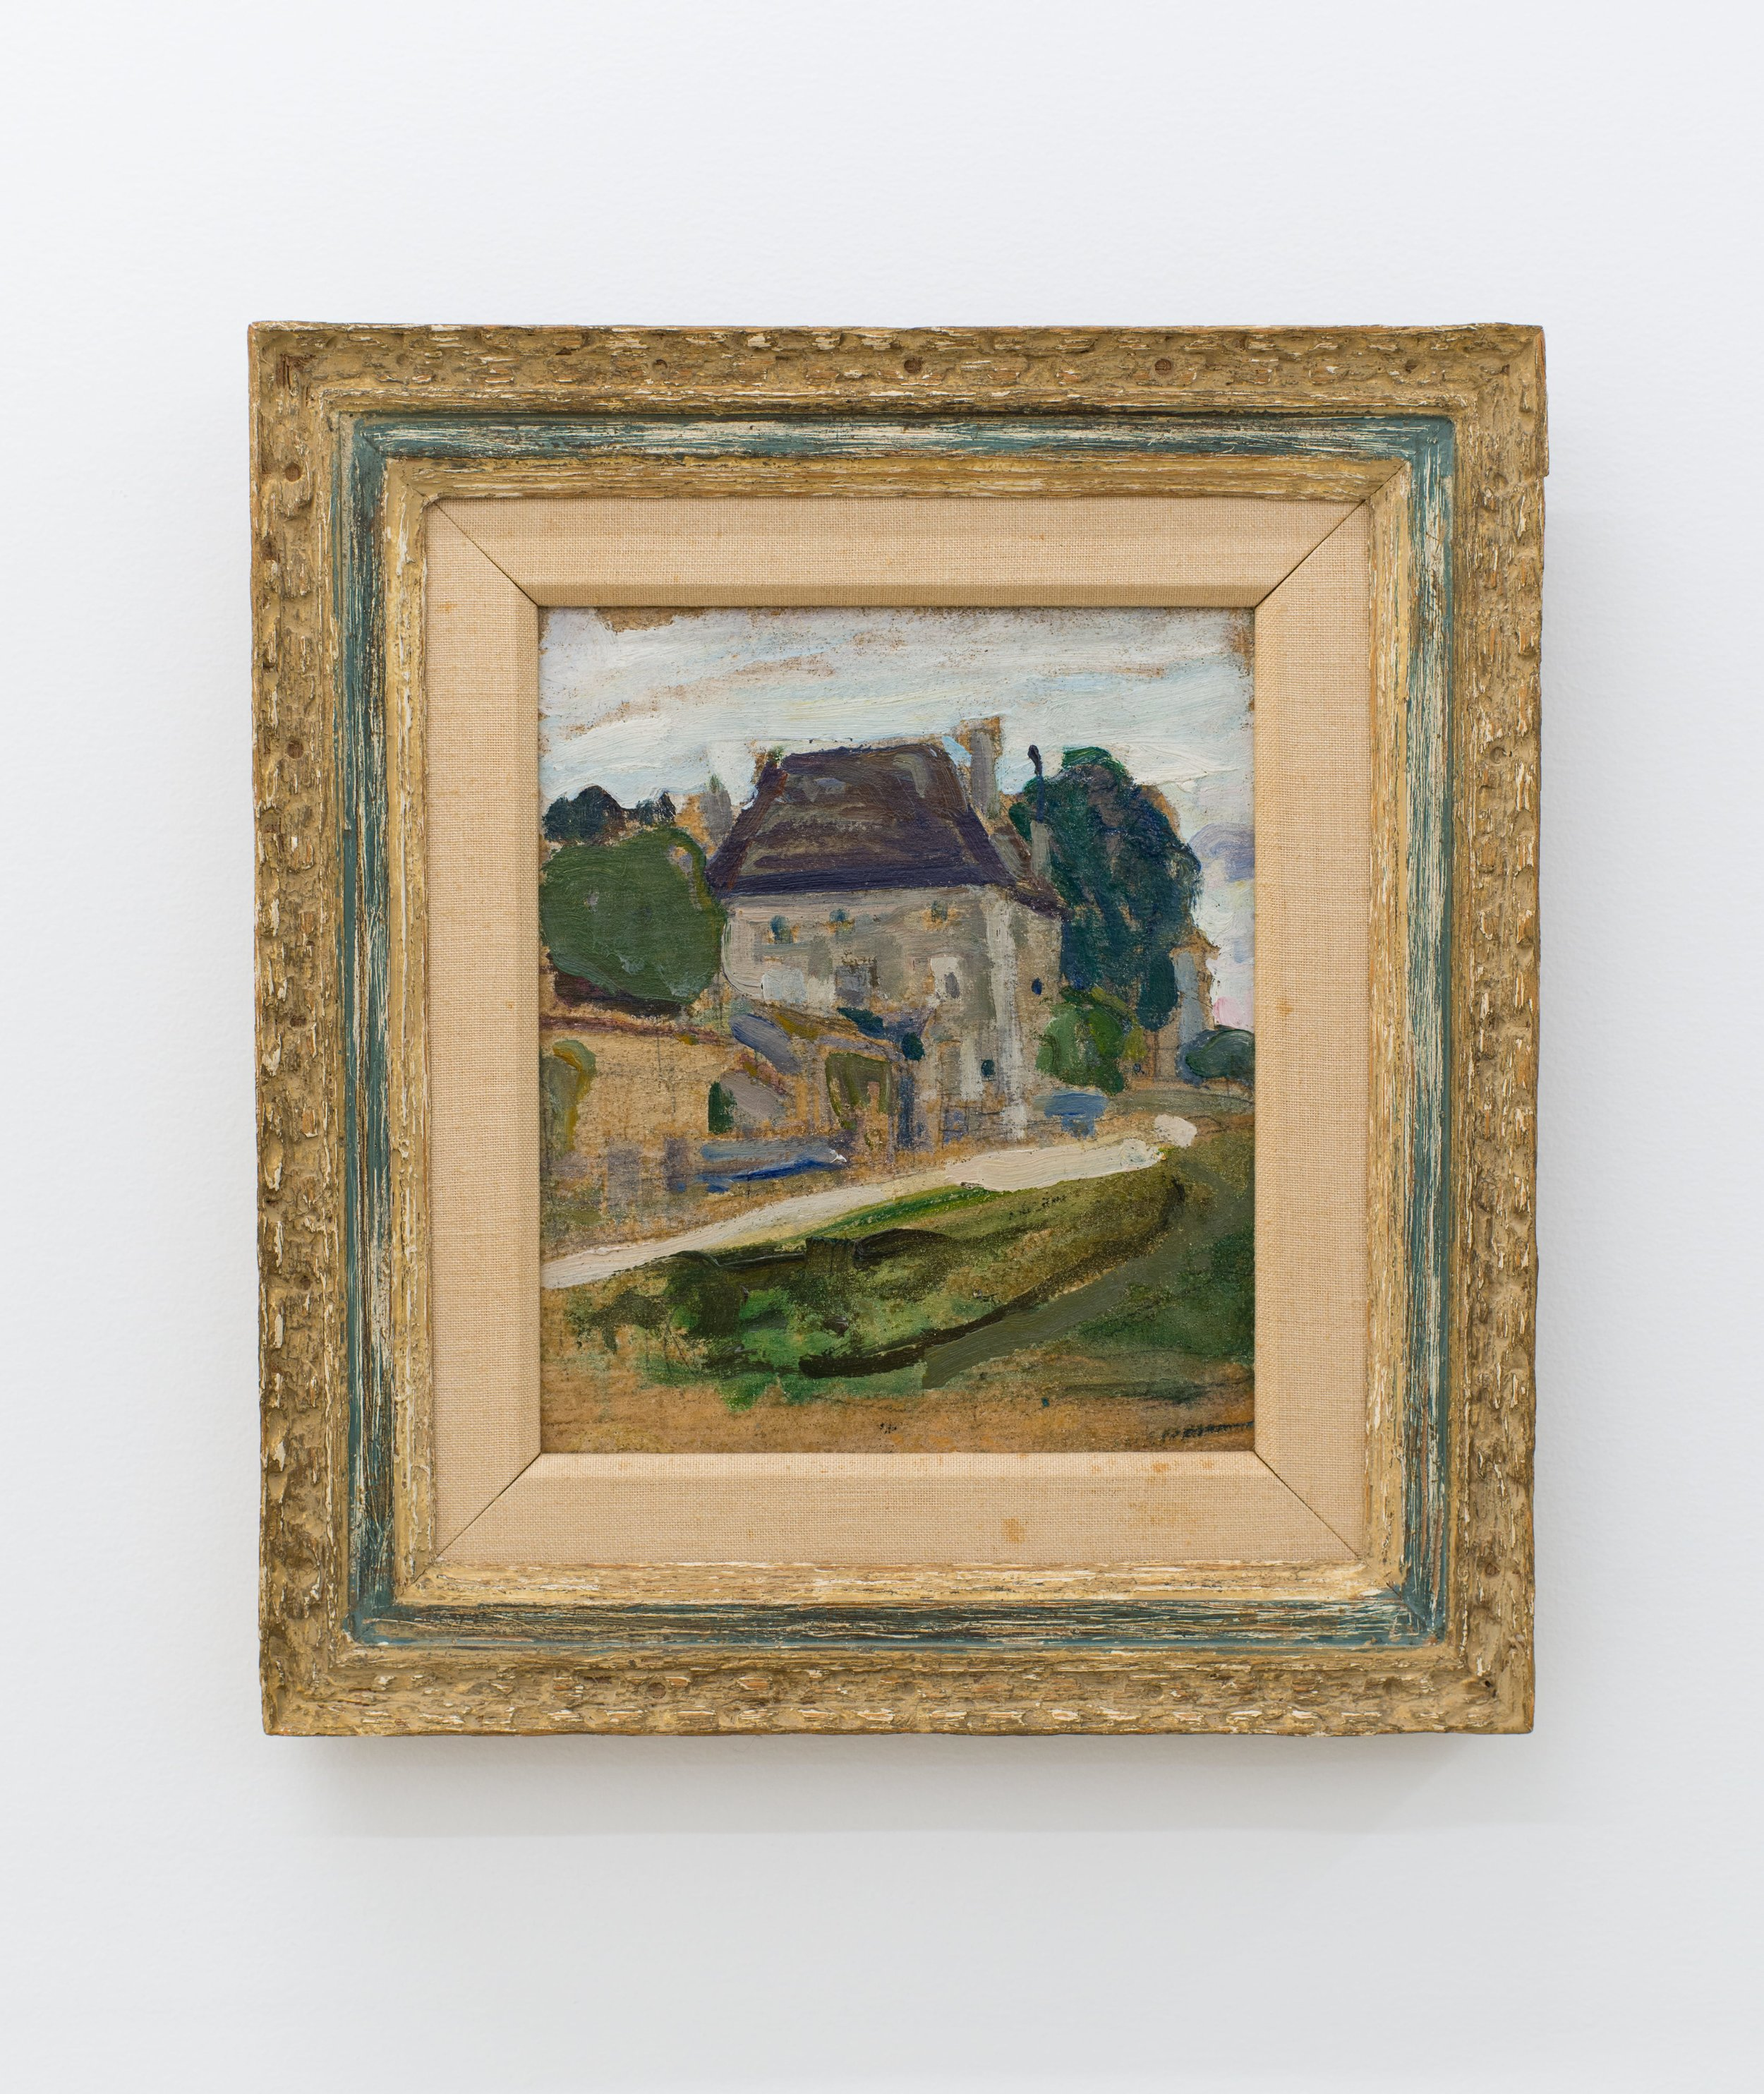 Henry Ossawa Tanner    French Chateau- A Study,  c. 1912 Oil on board 12 x 10 inches